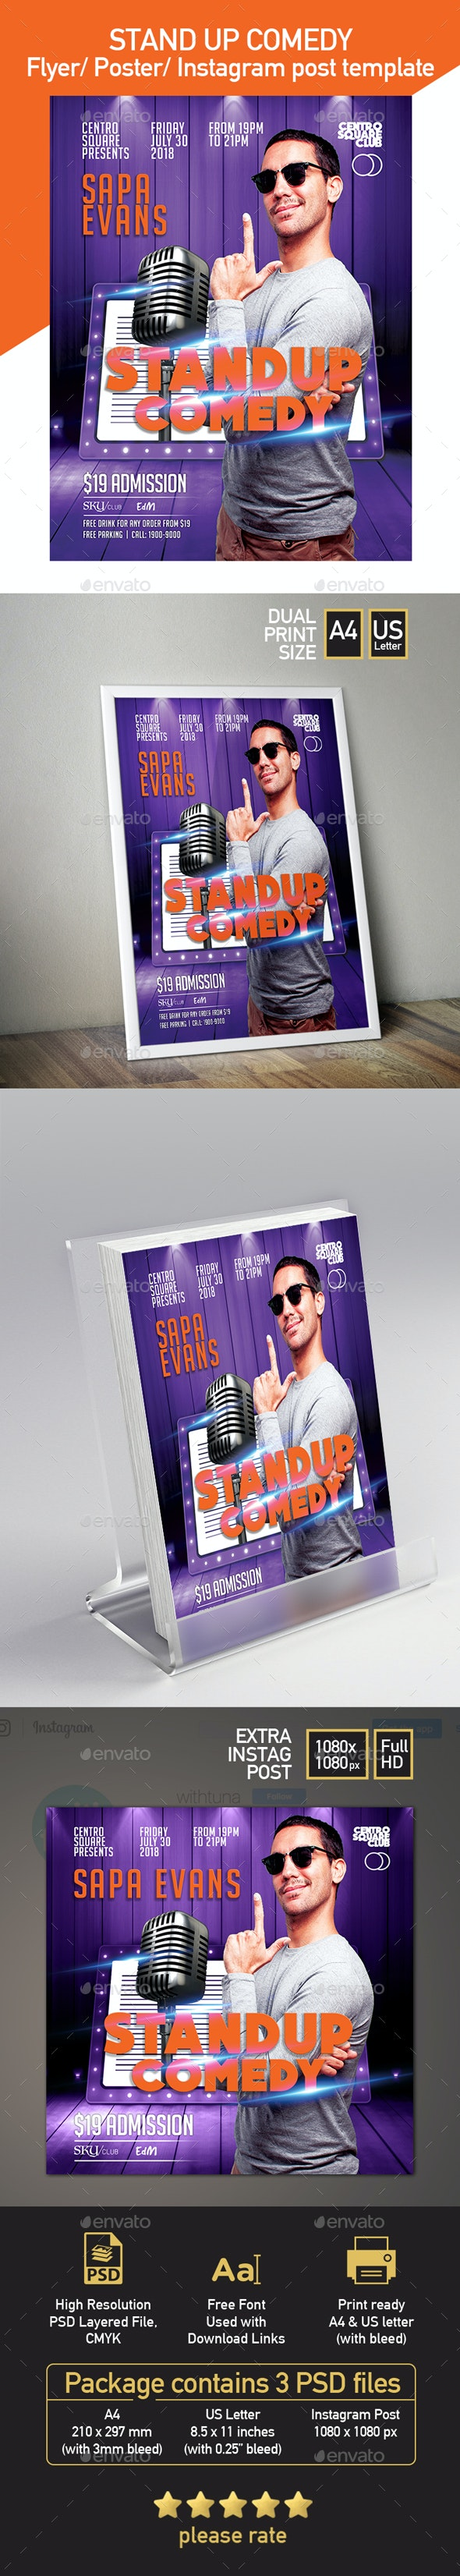 Stand up Comedy Flyer Template - with 3 Different Size Templates - Events Flyers